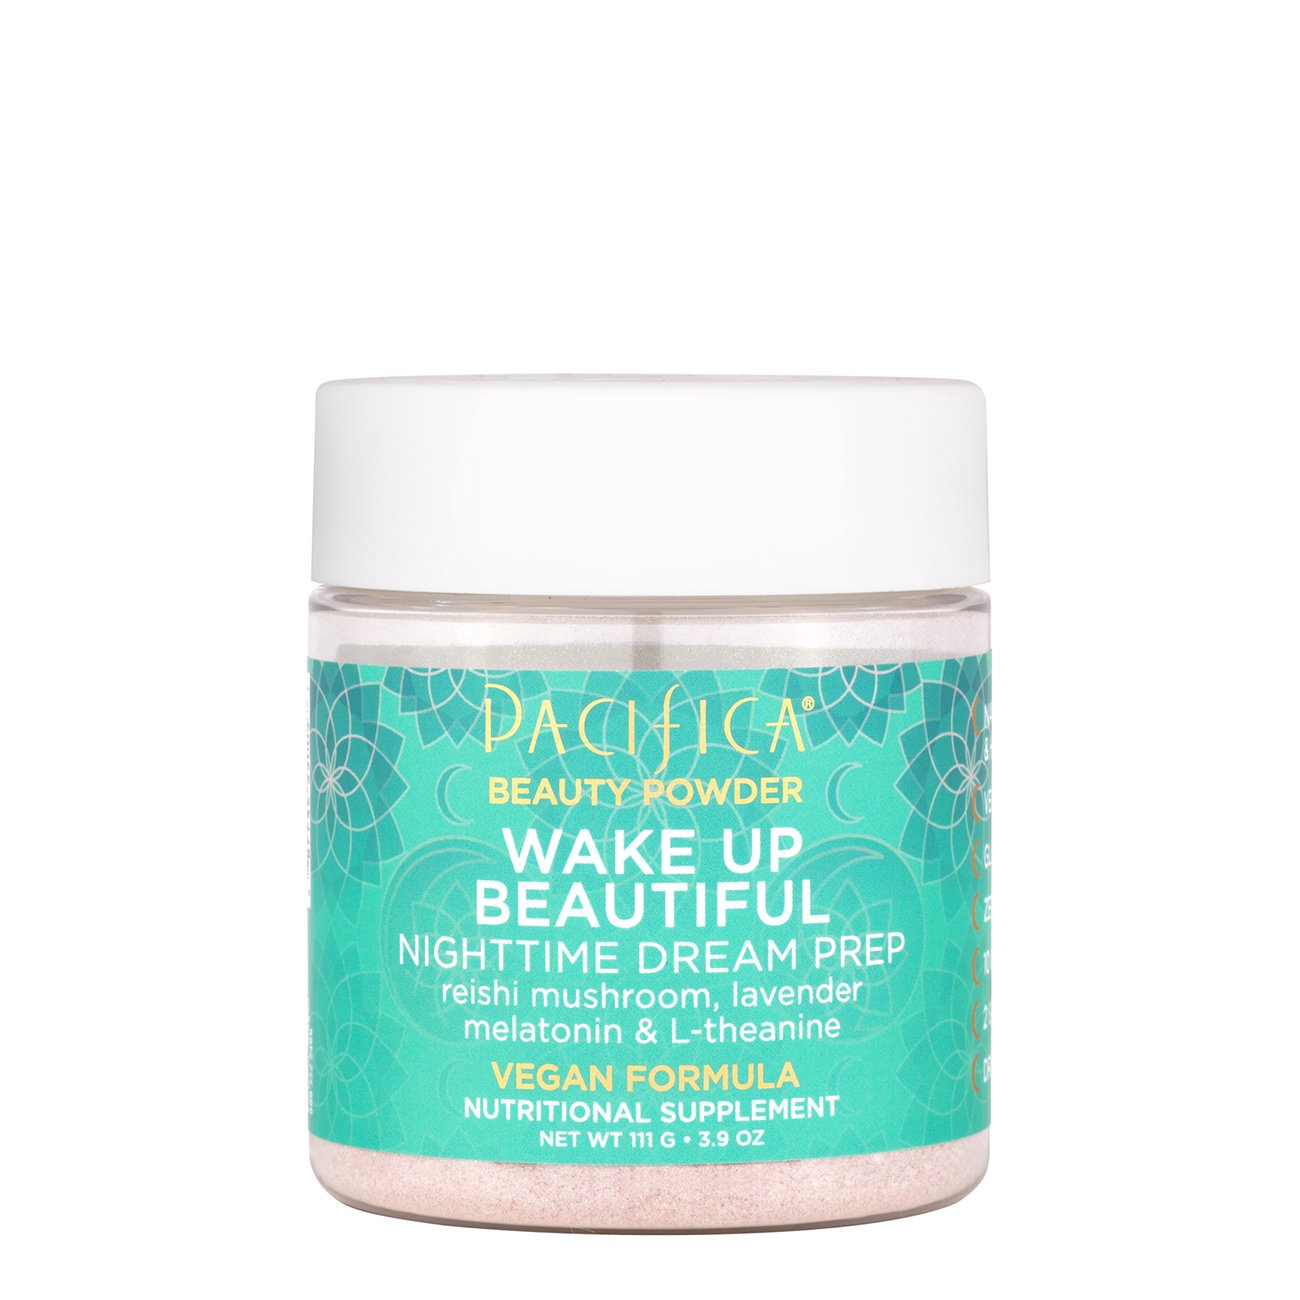 Wake Up Beautiful Nighttime Dream Prep - $19.99 | Pacifica BeautyIf you have trouble sleeping, this will put you out. I do not have trouble sleeping but bought it for the muscle relaxing benefits and noticed a huge difference with in the first 30 minutes. My husband has trouble falling asleep at night, and he was able to get to sleep right away after one scoop before bed. Side benefit: It makes your skin feel amazing!! So soft and supple.*Make sure to read all instructions/information and only ingest right before you go to bed, about 30 minutes before, as you will become very sleepy.